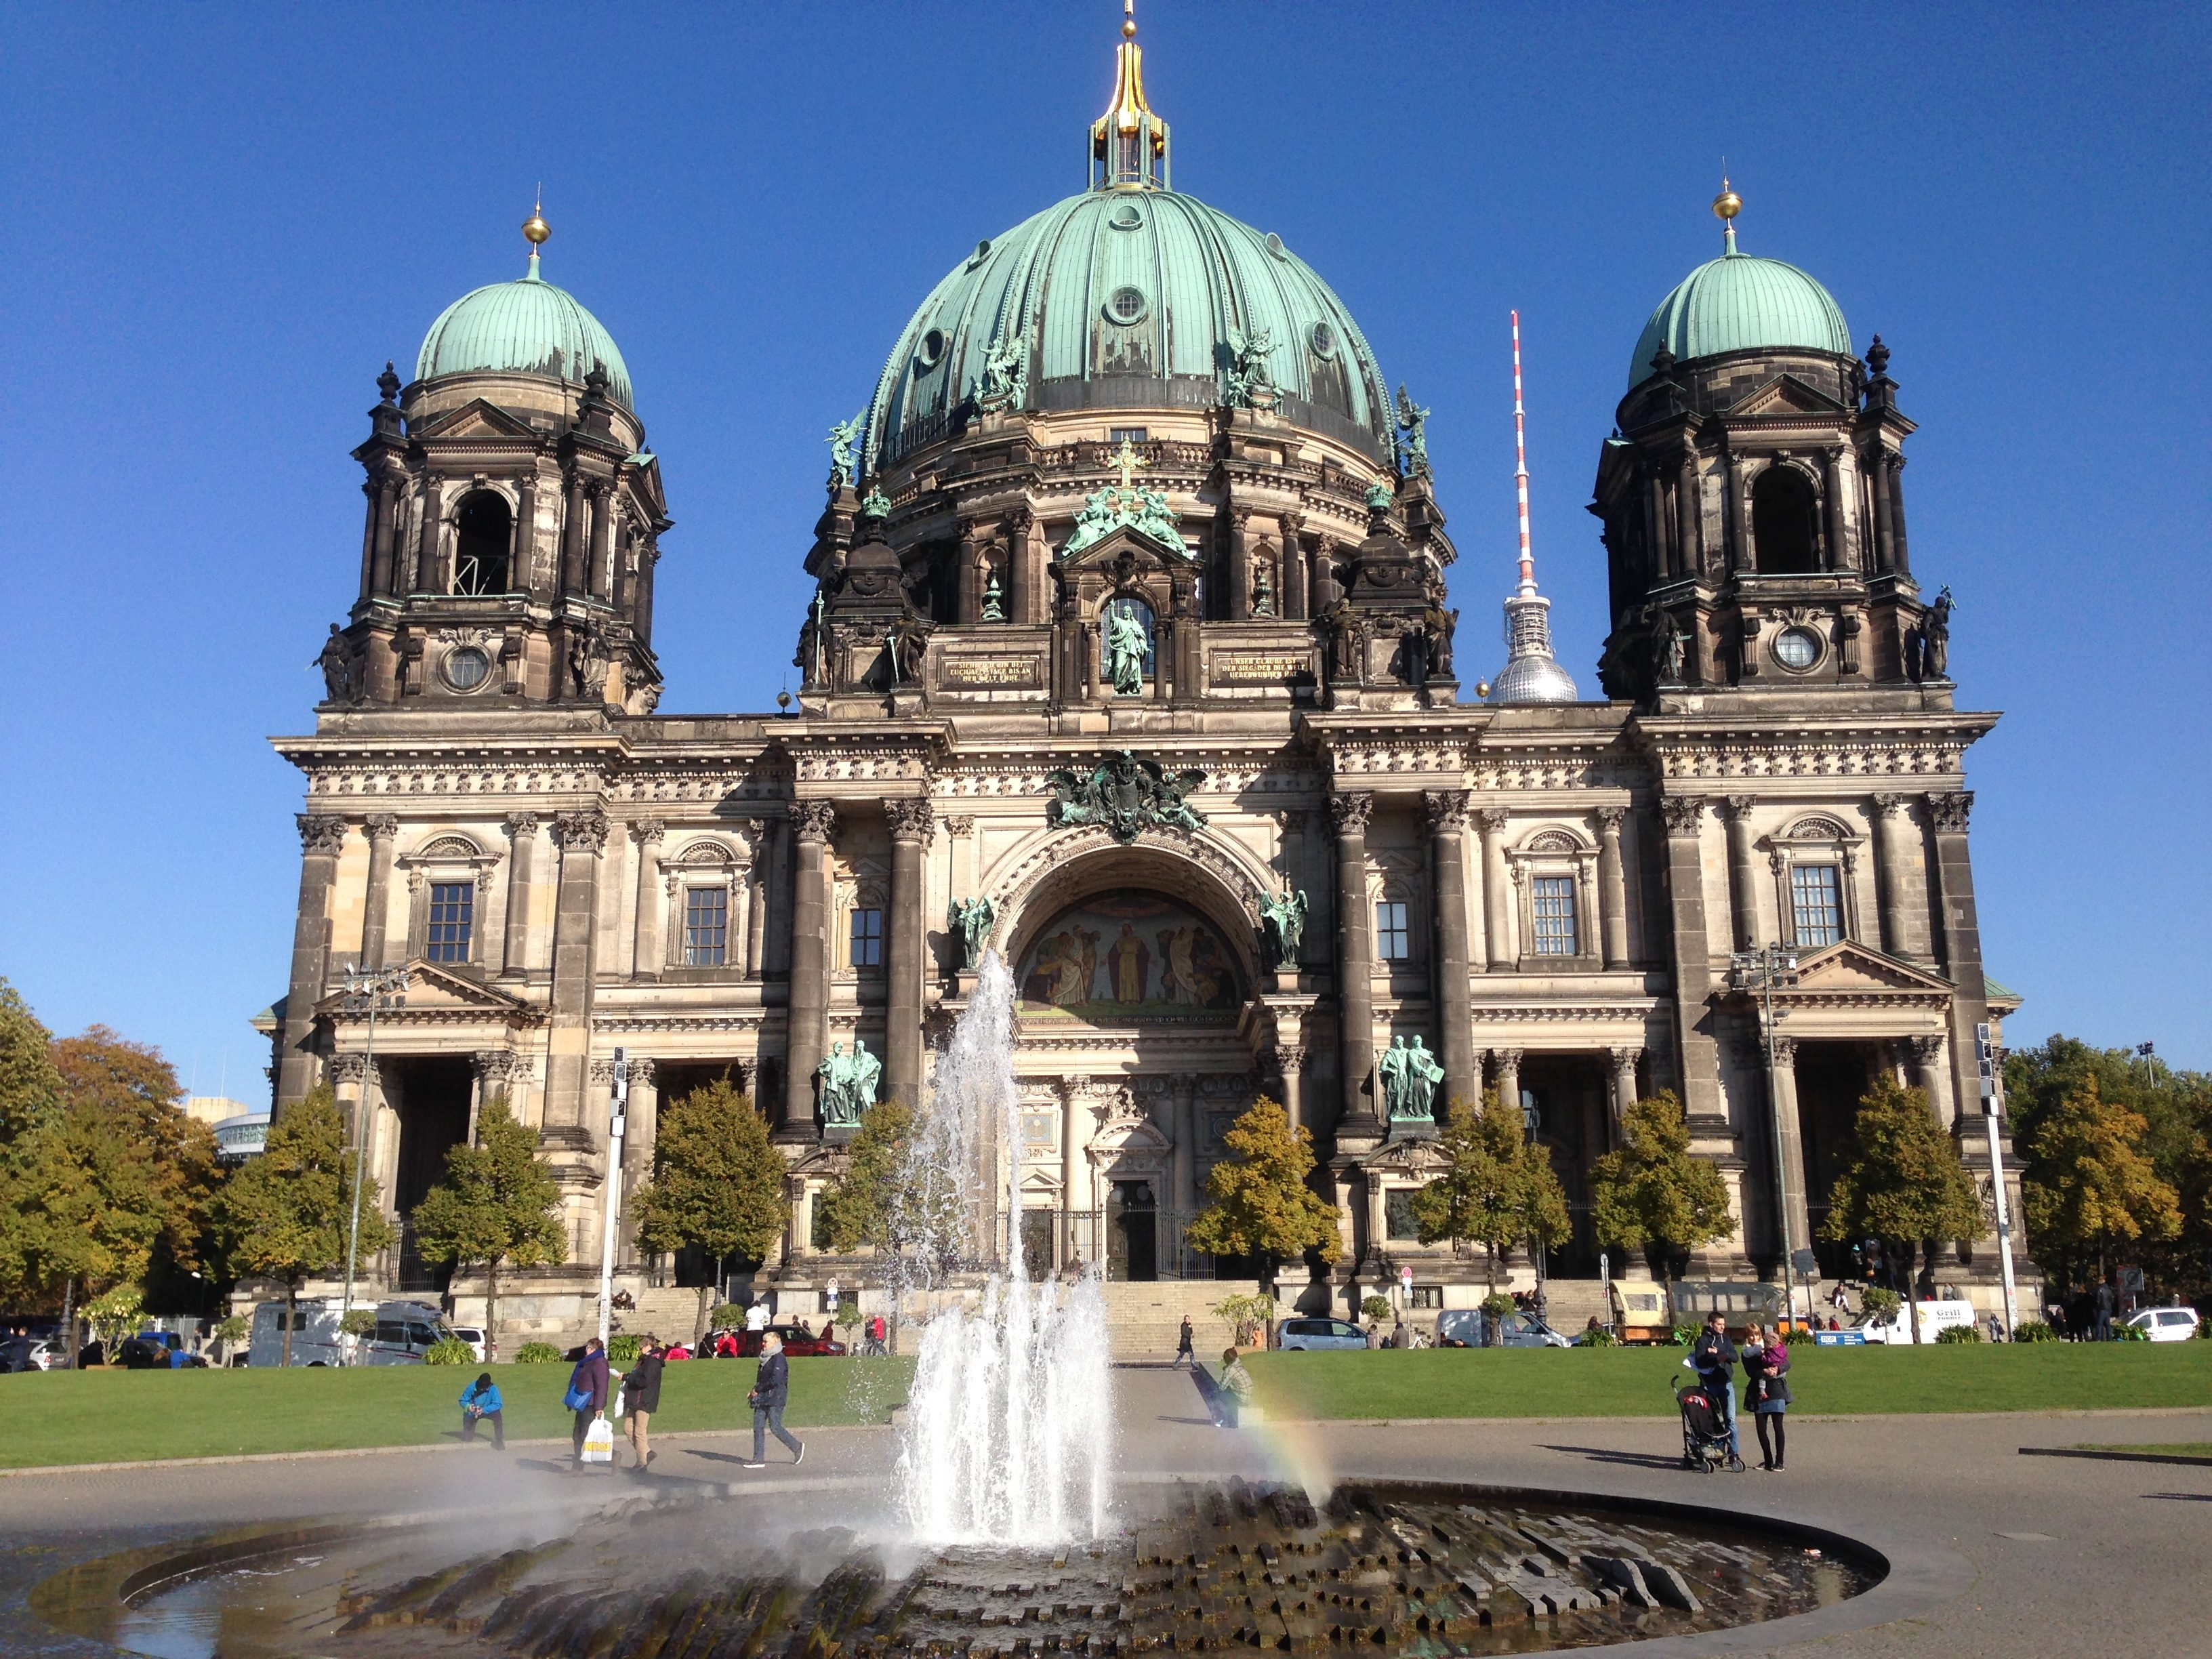 Berliner Dom at the heart of Museum Island.